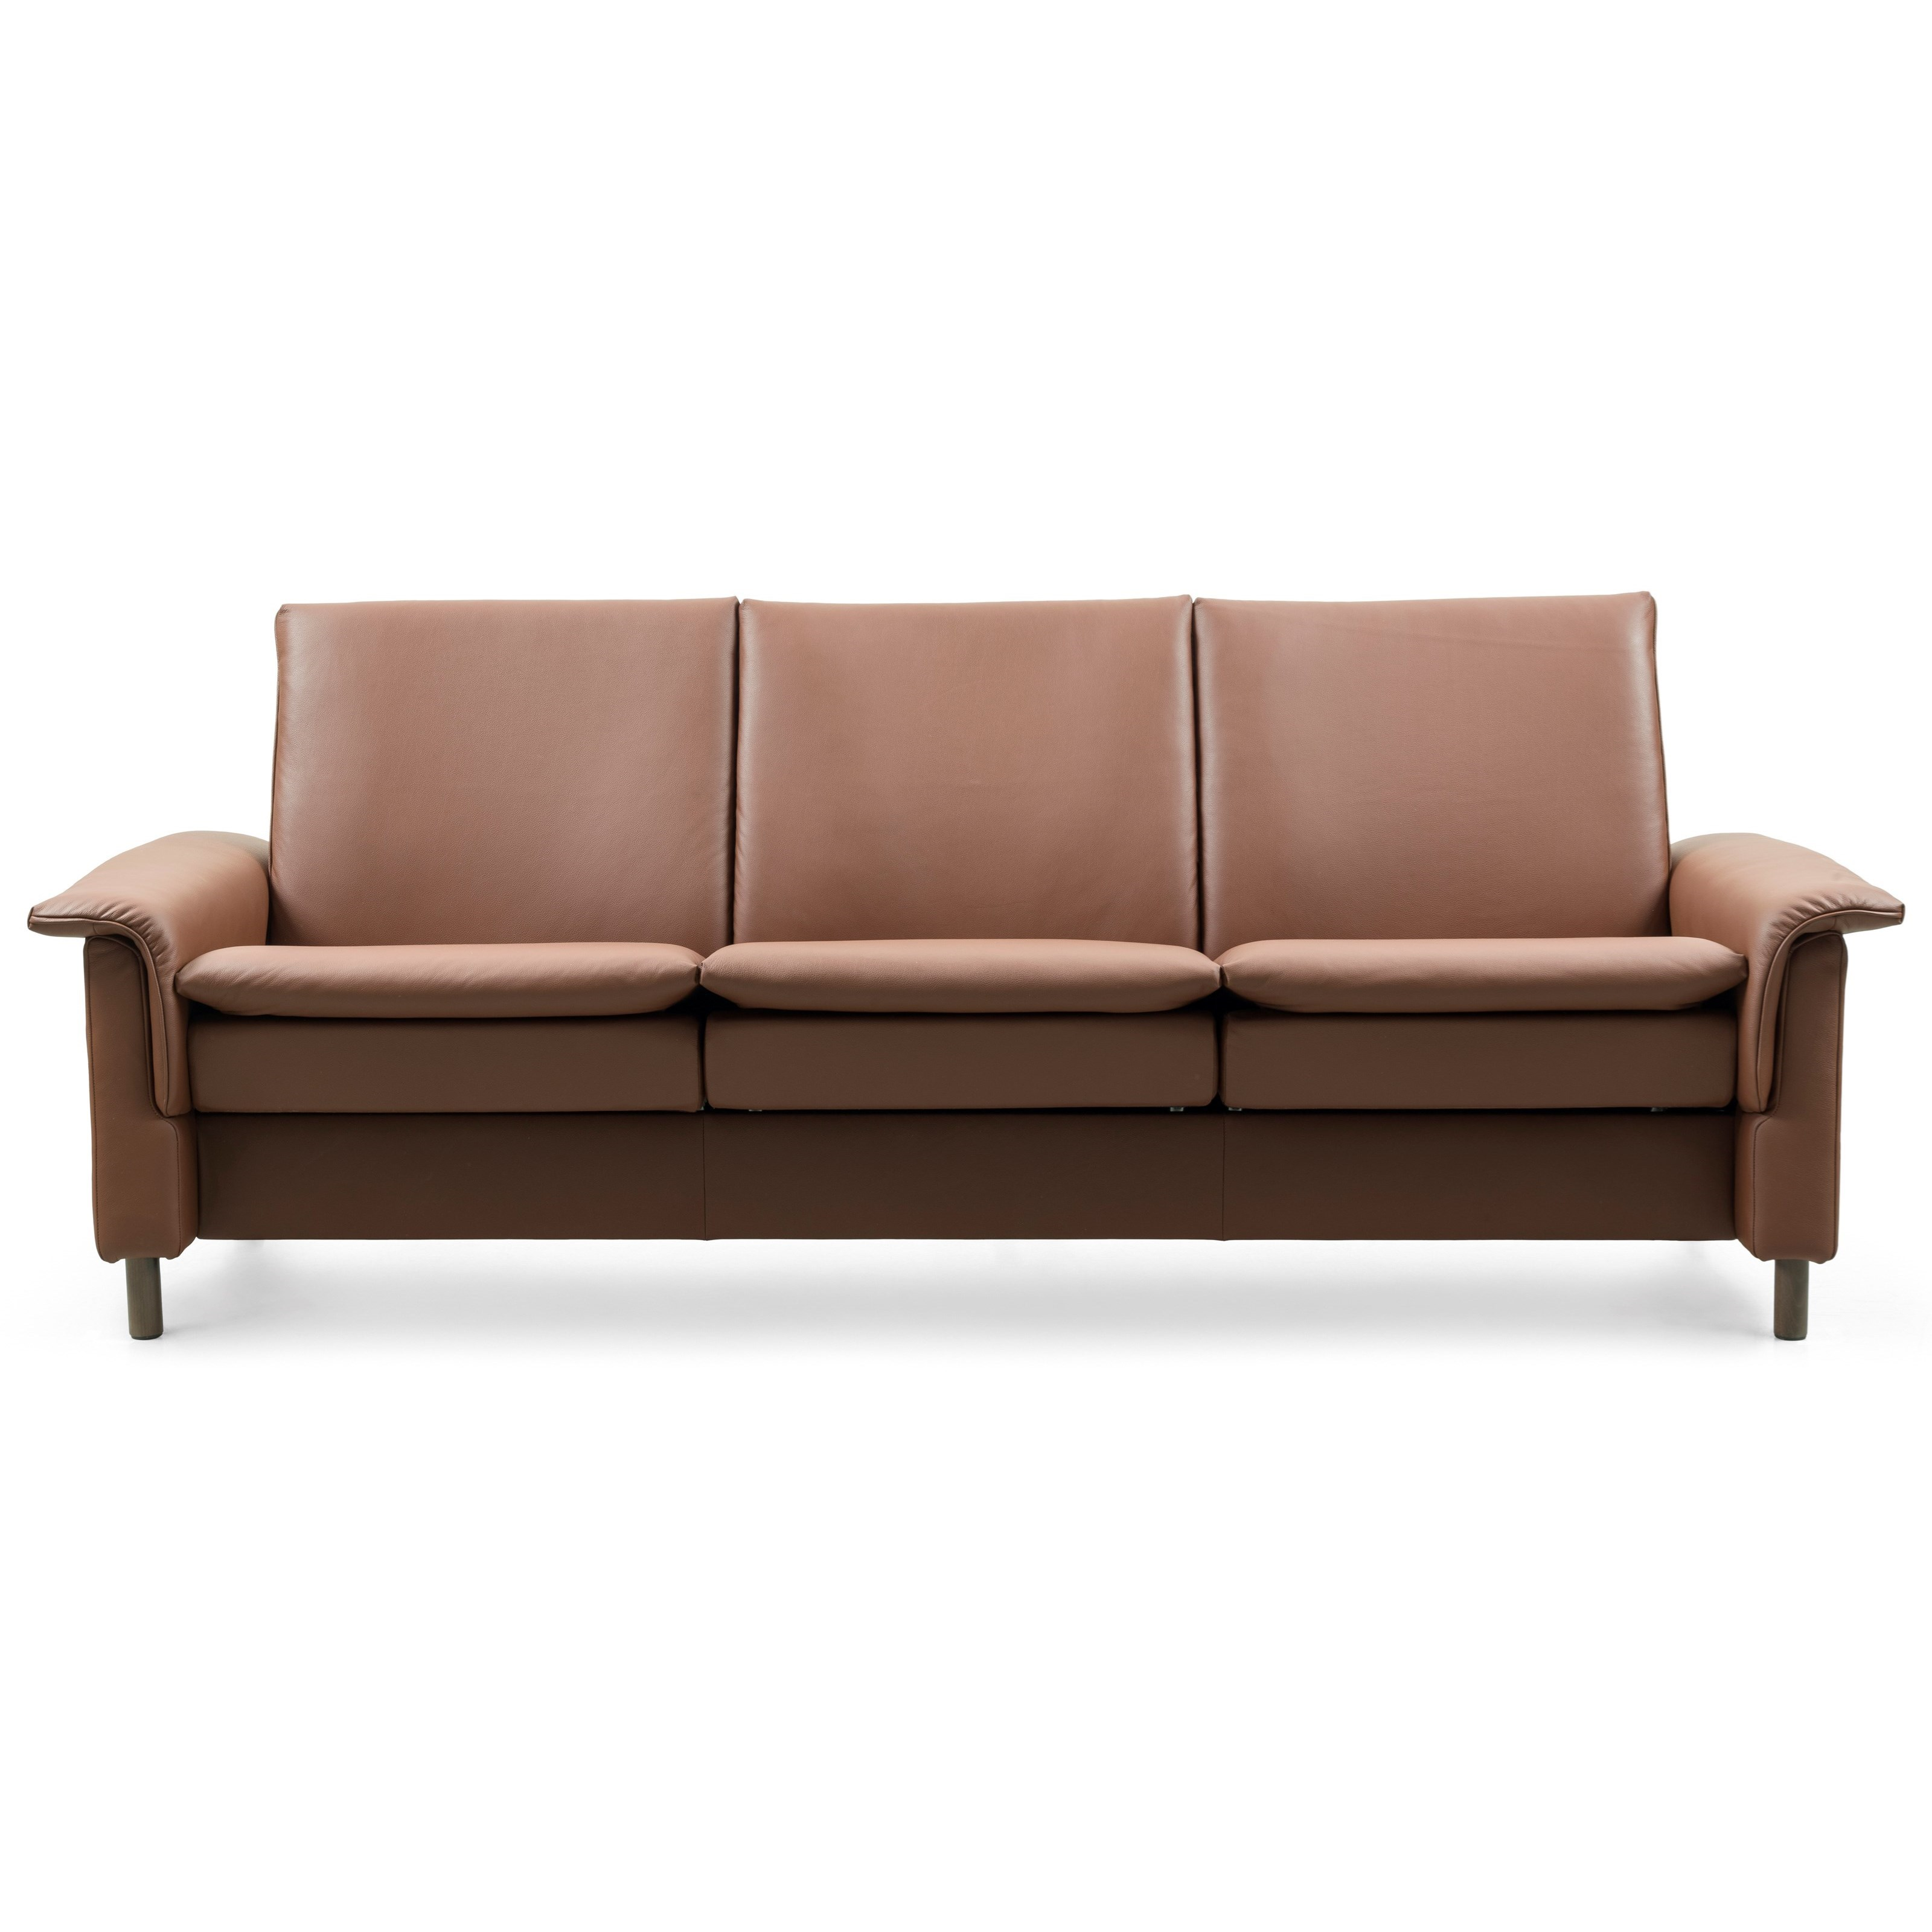 Aurora Low-Back Reclining Sofa by Stressless at Jordan's Home Furnishings